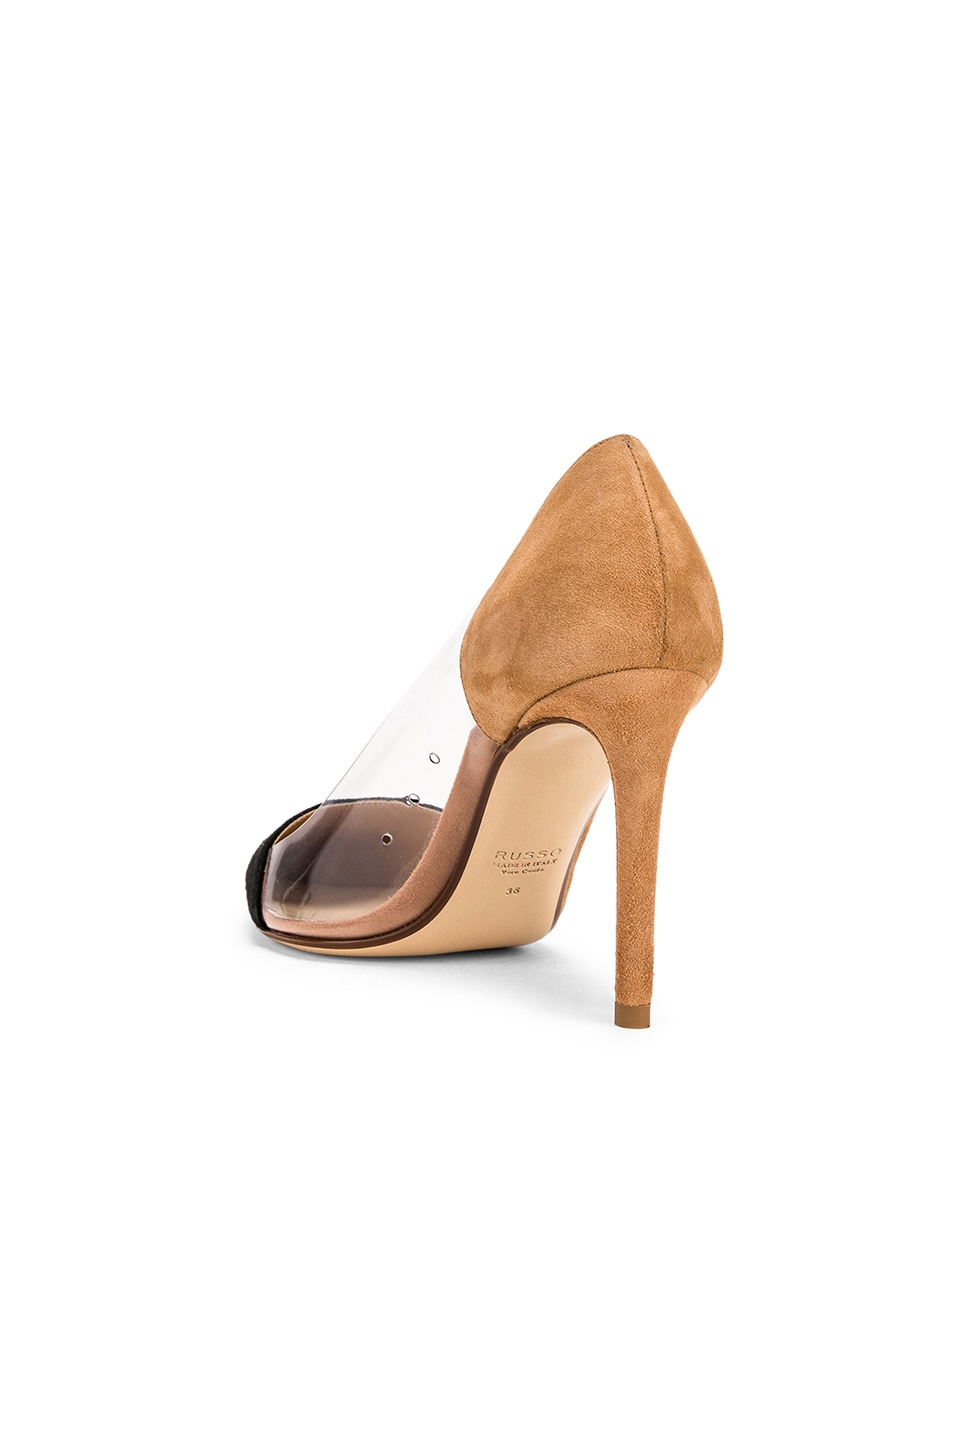 Image 3 of FRANCESCO RUSSO Two Tone PVC Heels in Black & Camel